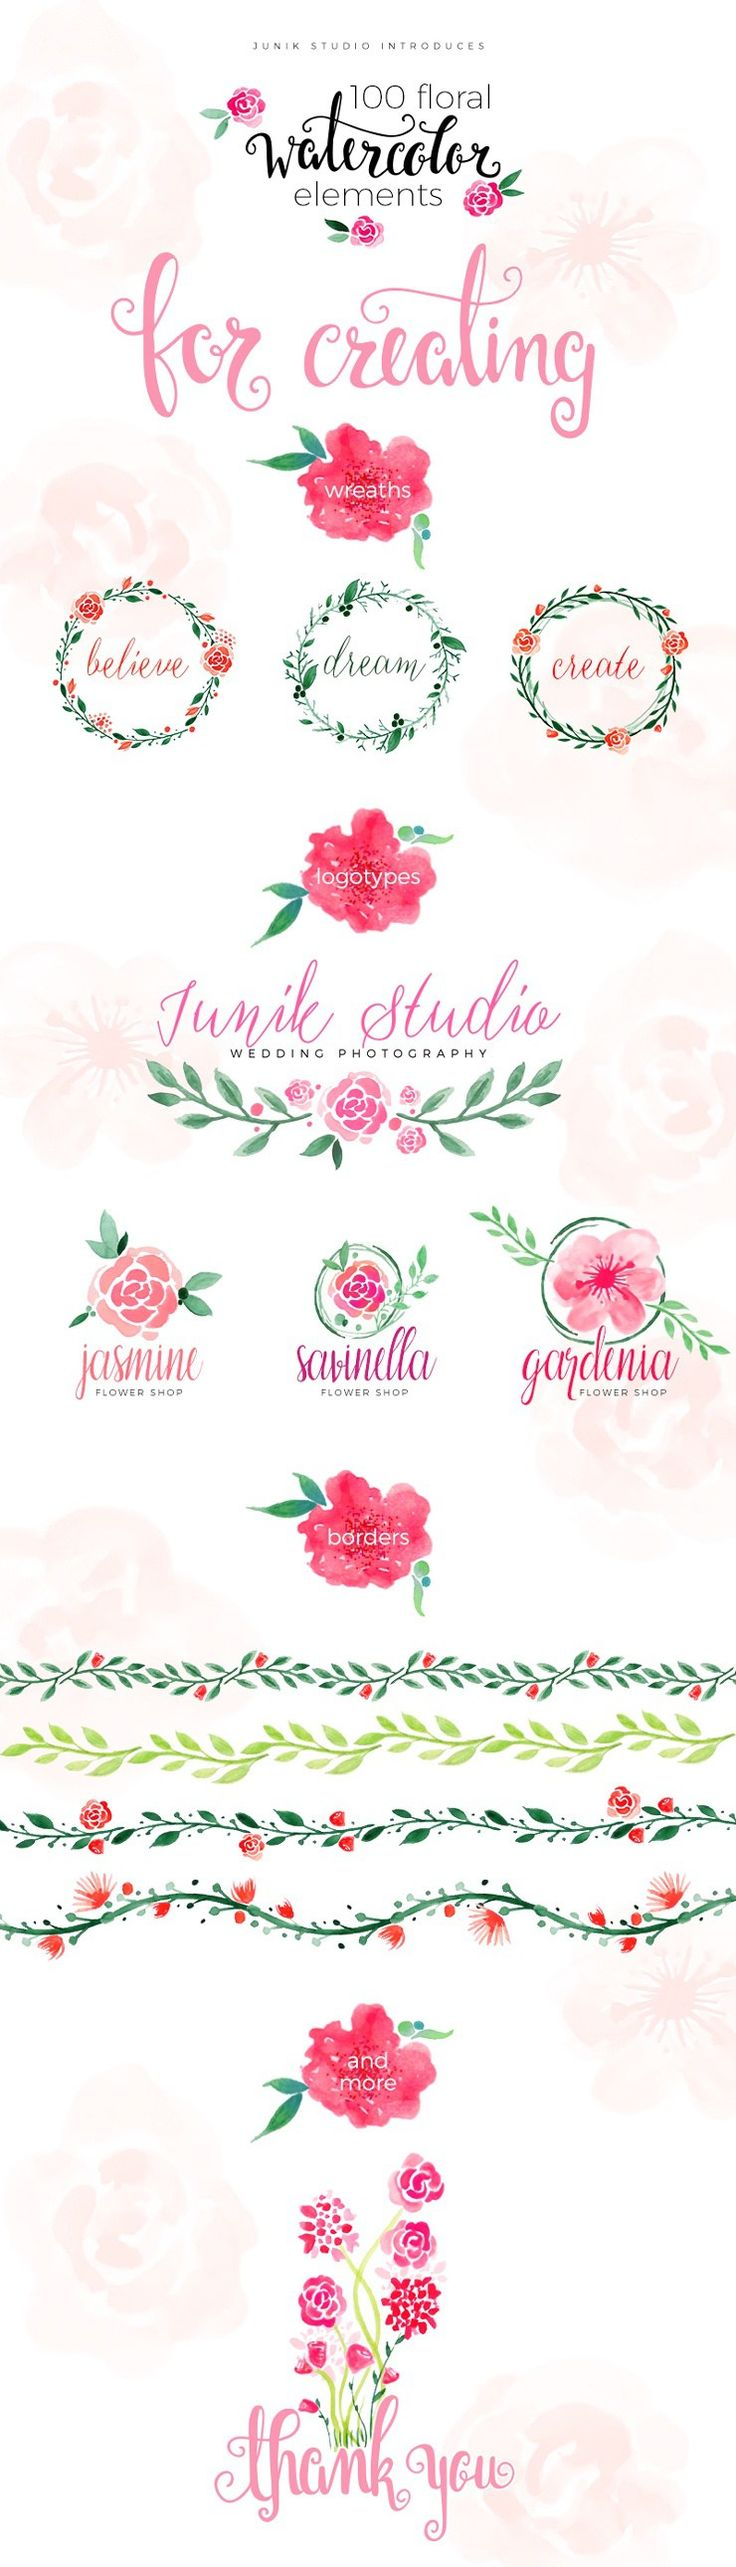 This pack includes 100 free watercolor elements in PNG file format and is designed by Junik Studio. You can download and use these floral elements for free in your personal and commercial projects.